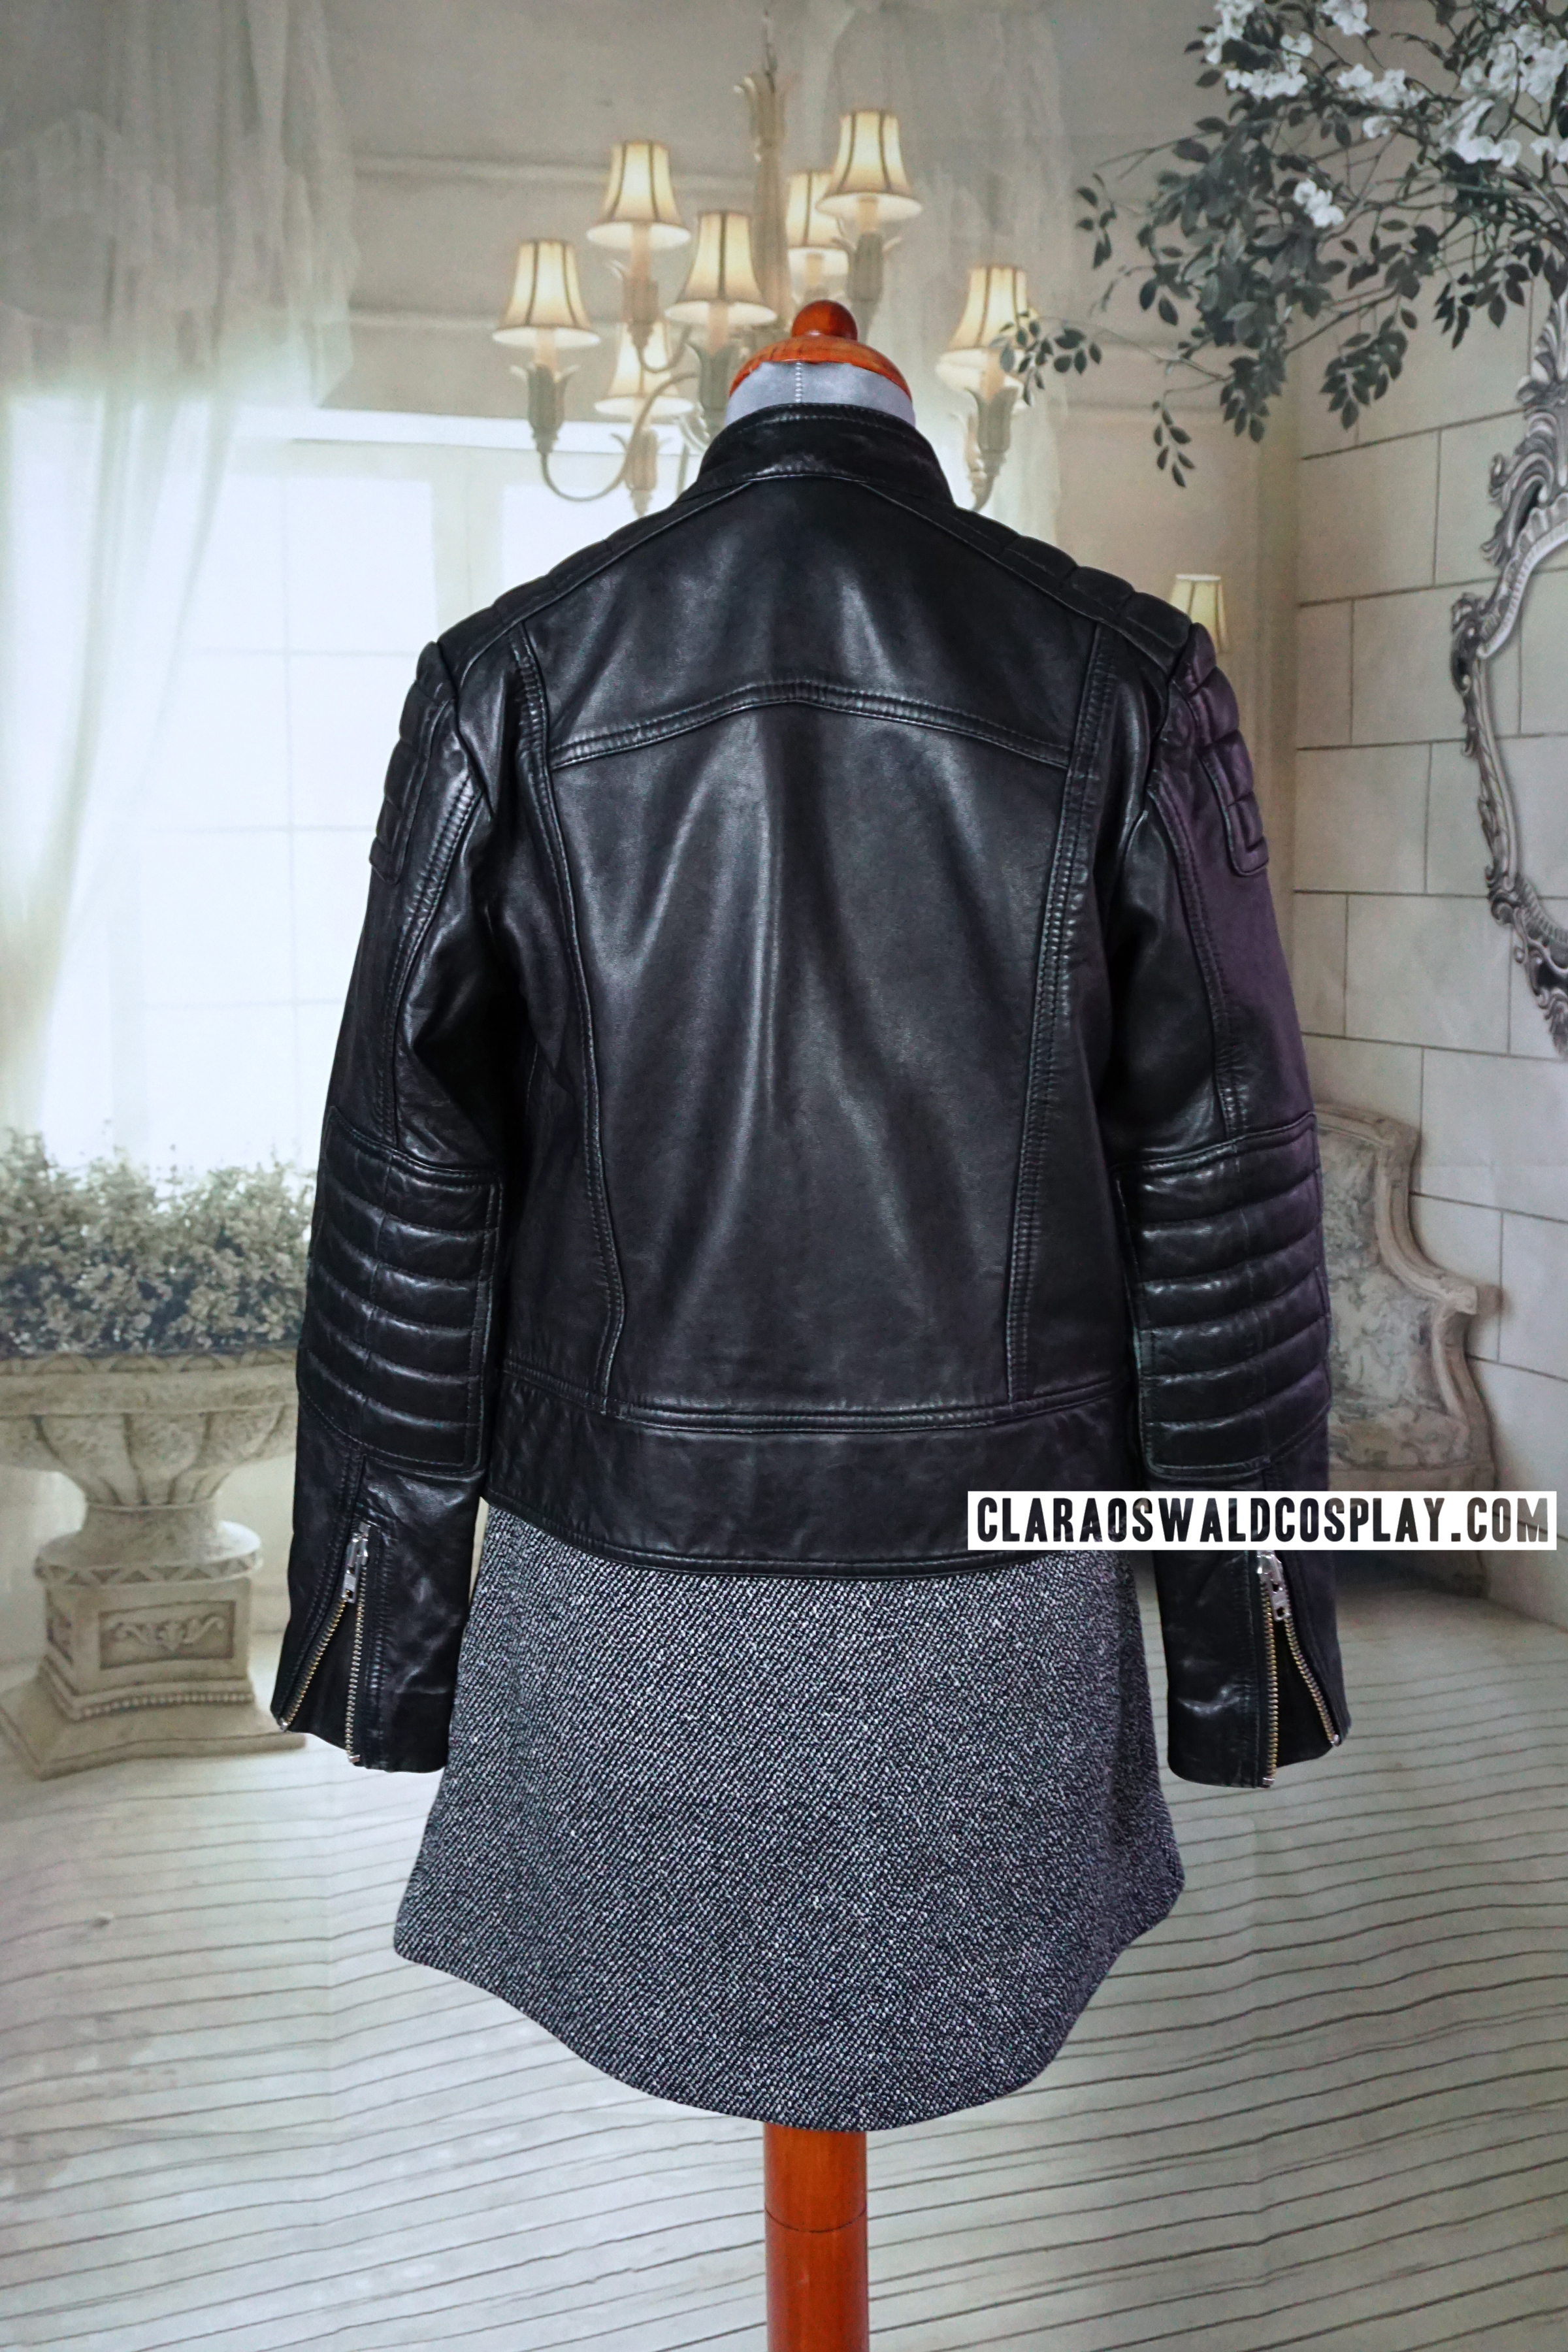 Back view of the &Other Stories Leather Jacket